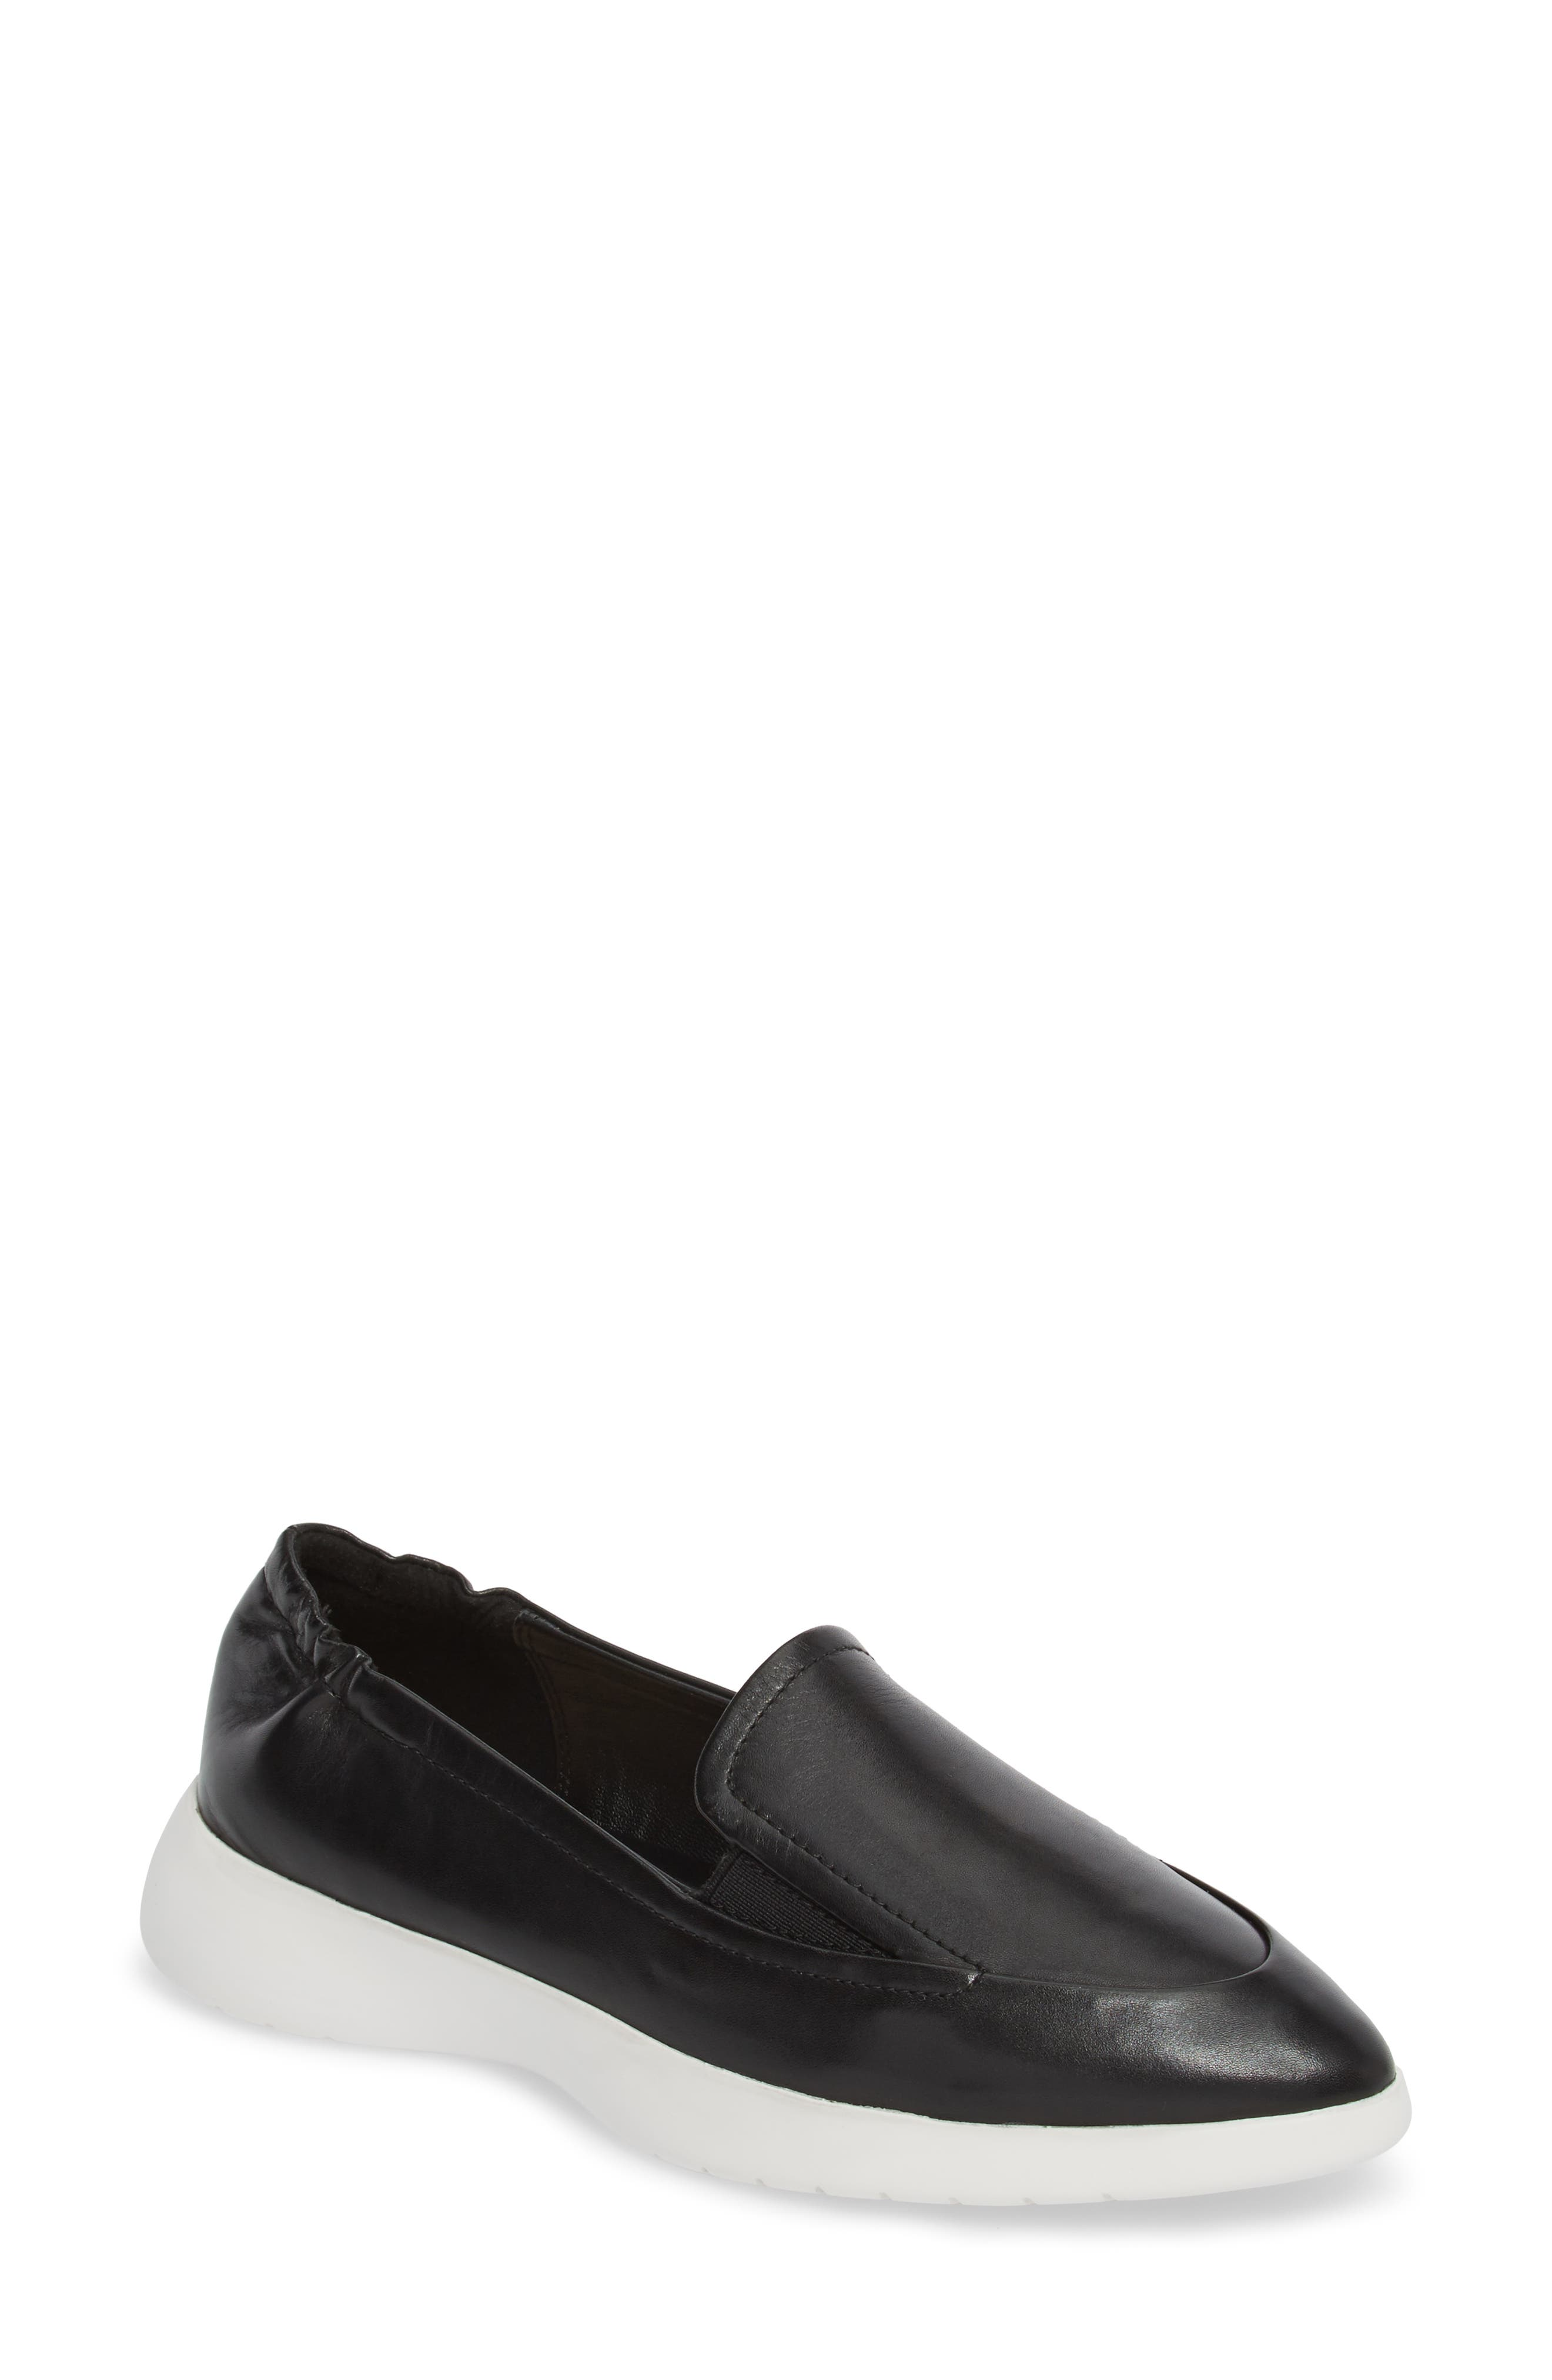 Dana Loafer Sneaker,                         Main,                         color, Black Leather